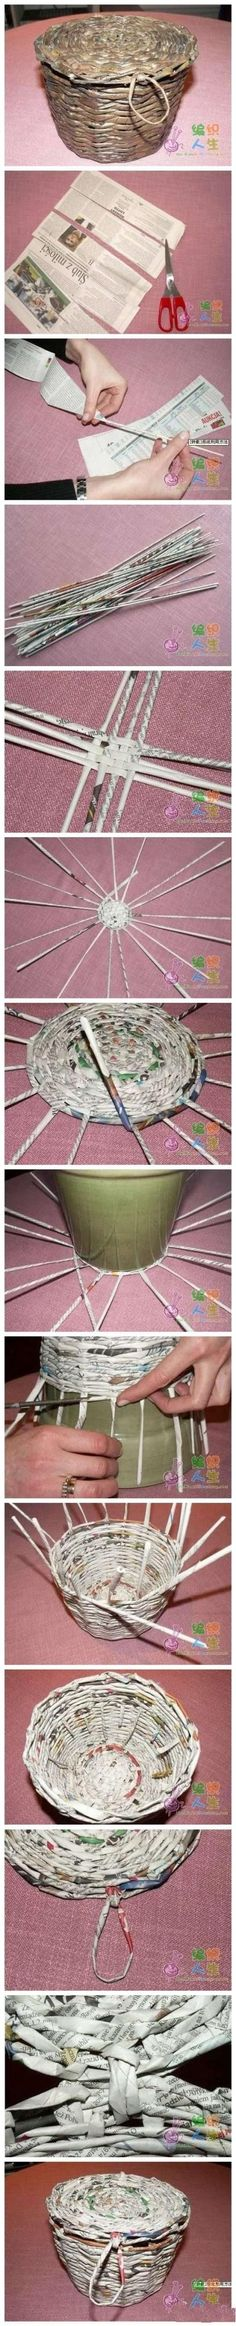 DIY newspaper basket making DIY Weaving DIY Crafts by esoteris